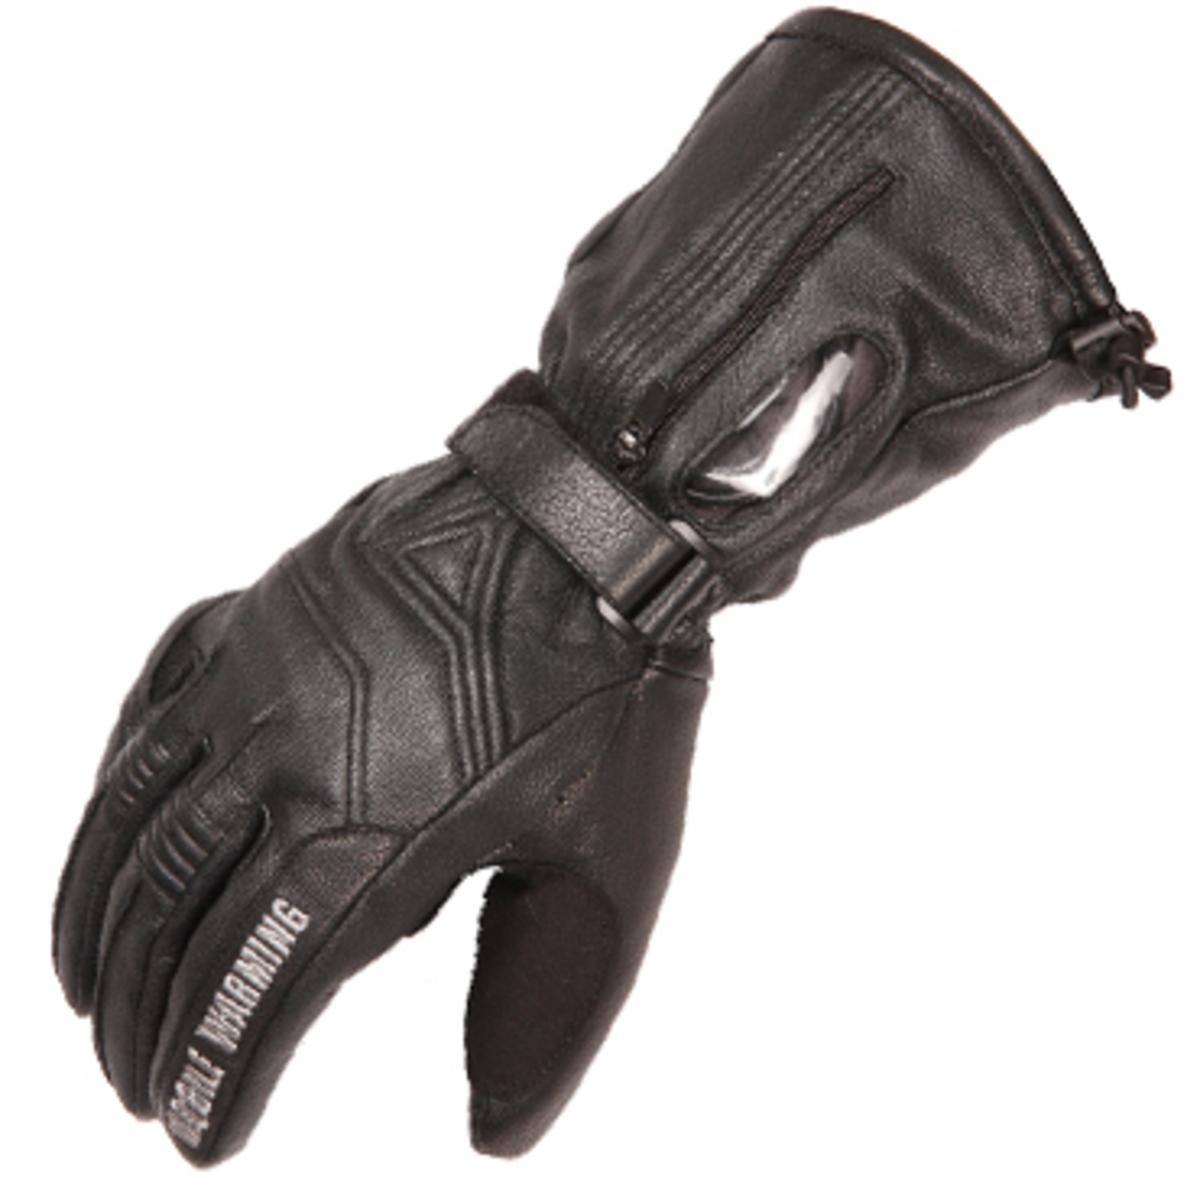 Ansai Mobile Warming Mens Ltd Max Leather Glove The Store Gerbing Heated Clothing Wiring Diagram